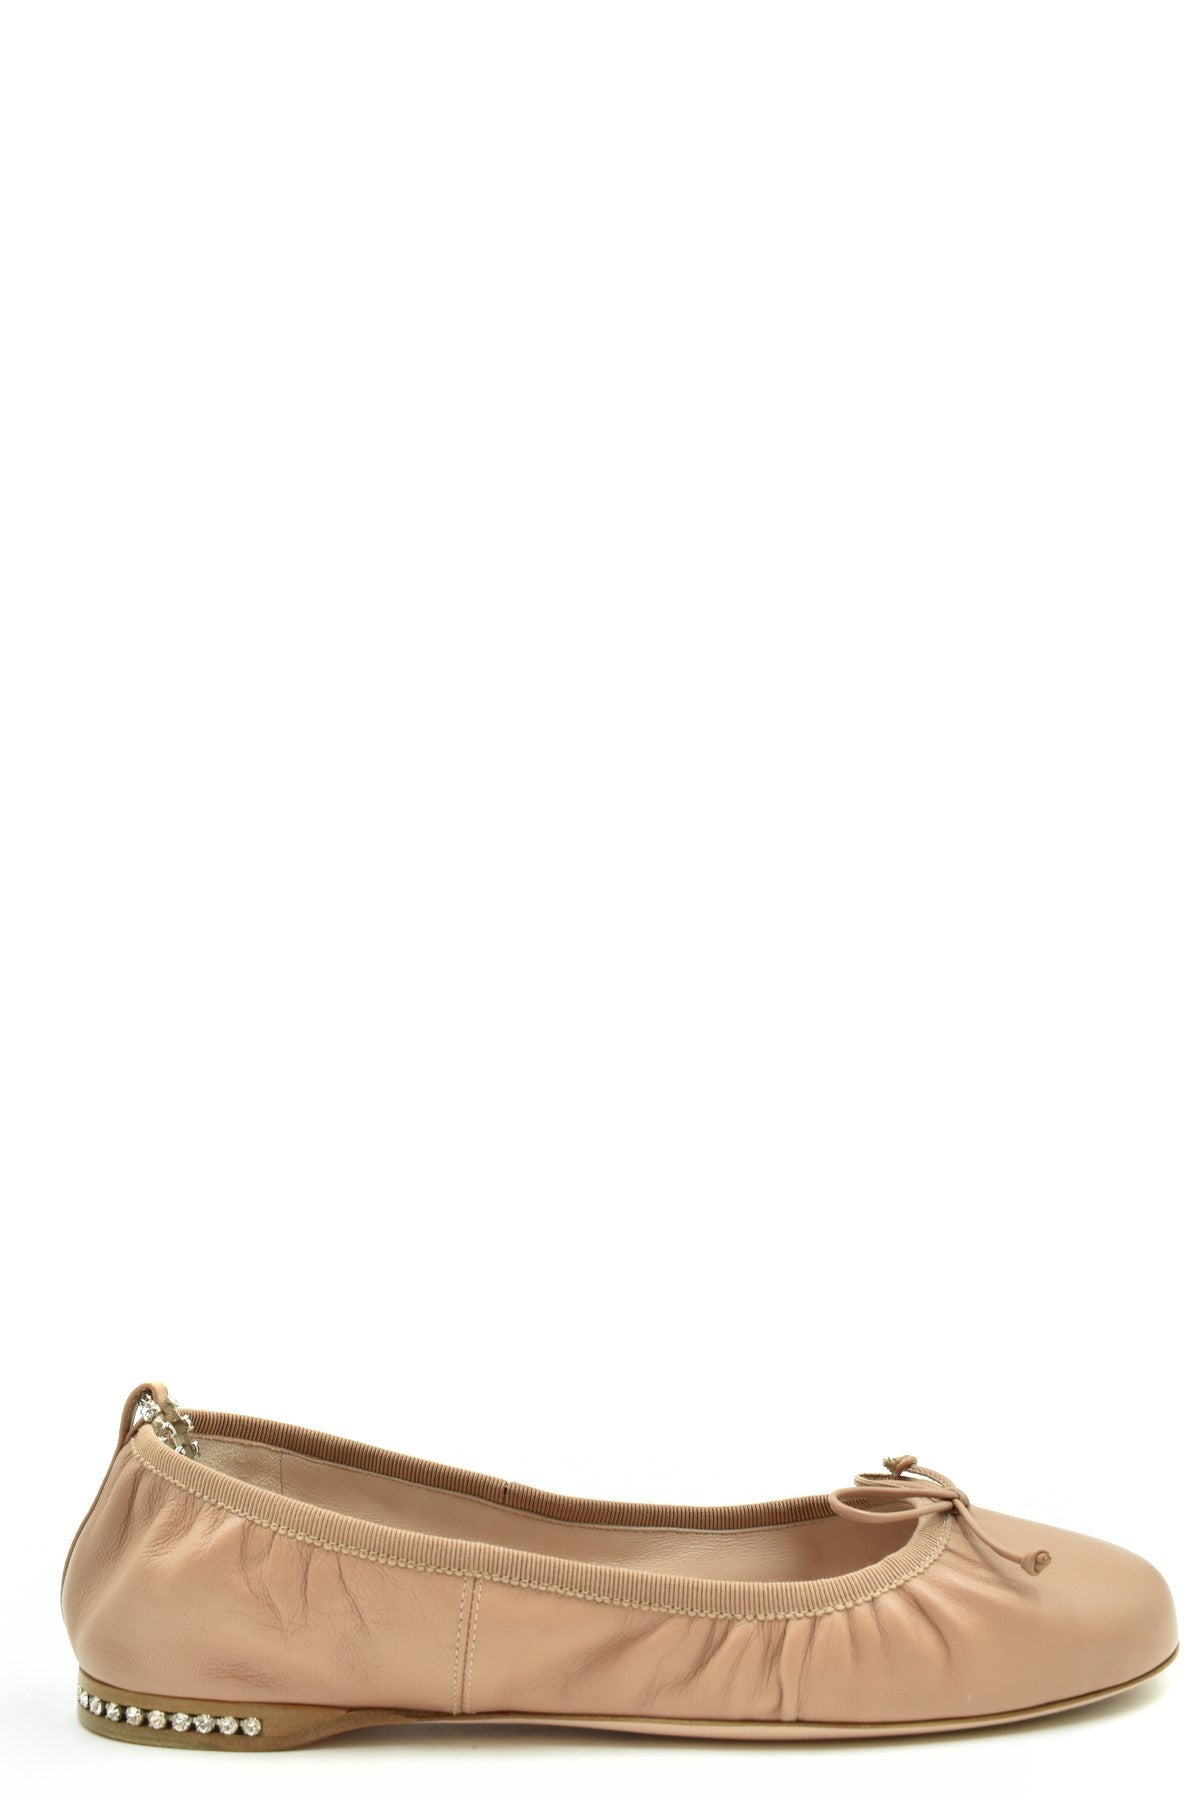 Shoes Miu Miu-Women's Fashion - Women's Shoes - Women's Flats-36-Product Details Terms: New With LabelMain Color: Antique PinkType Of Accessory: ShoesSeason: Spring / SummerMade In: ItalyGender: WomanSize: EuComposition: Leather 100%Year: 2020Manufacturer Part Number: 5F916C 038-Keyomi-Sook